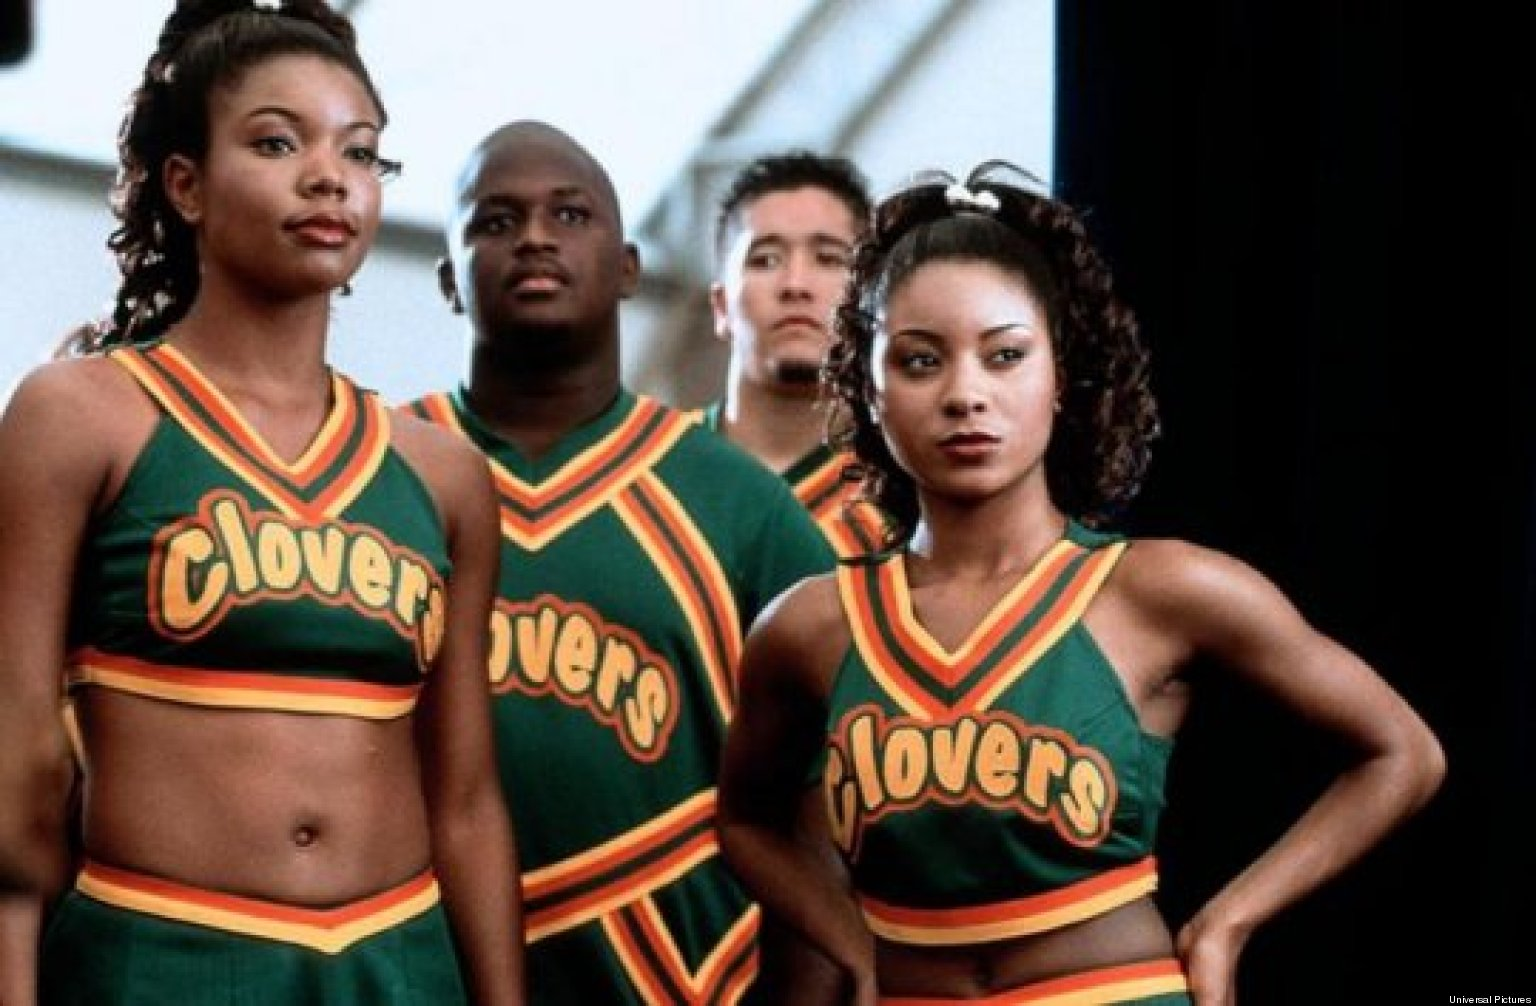 Bring It On Actress Dies In Car Accident